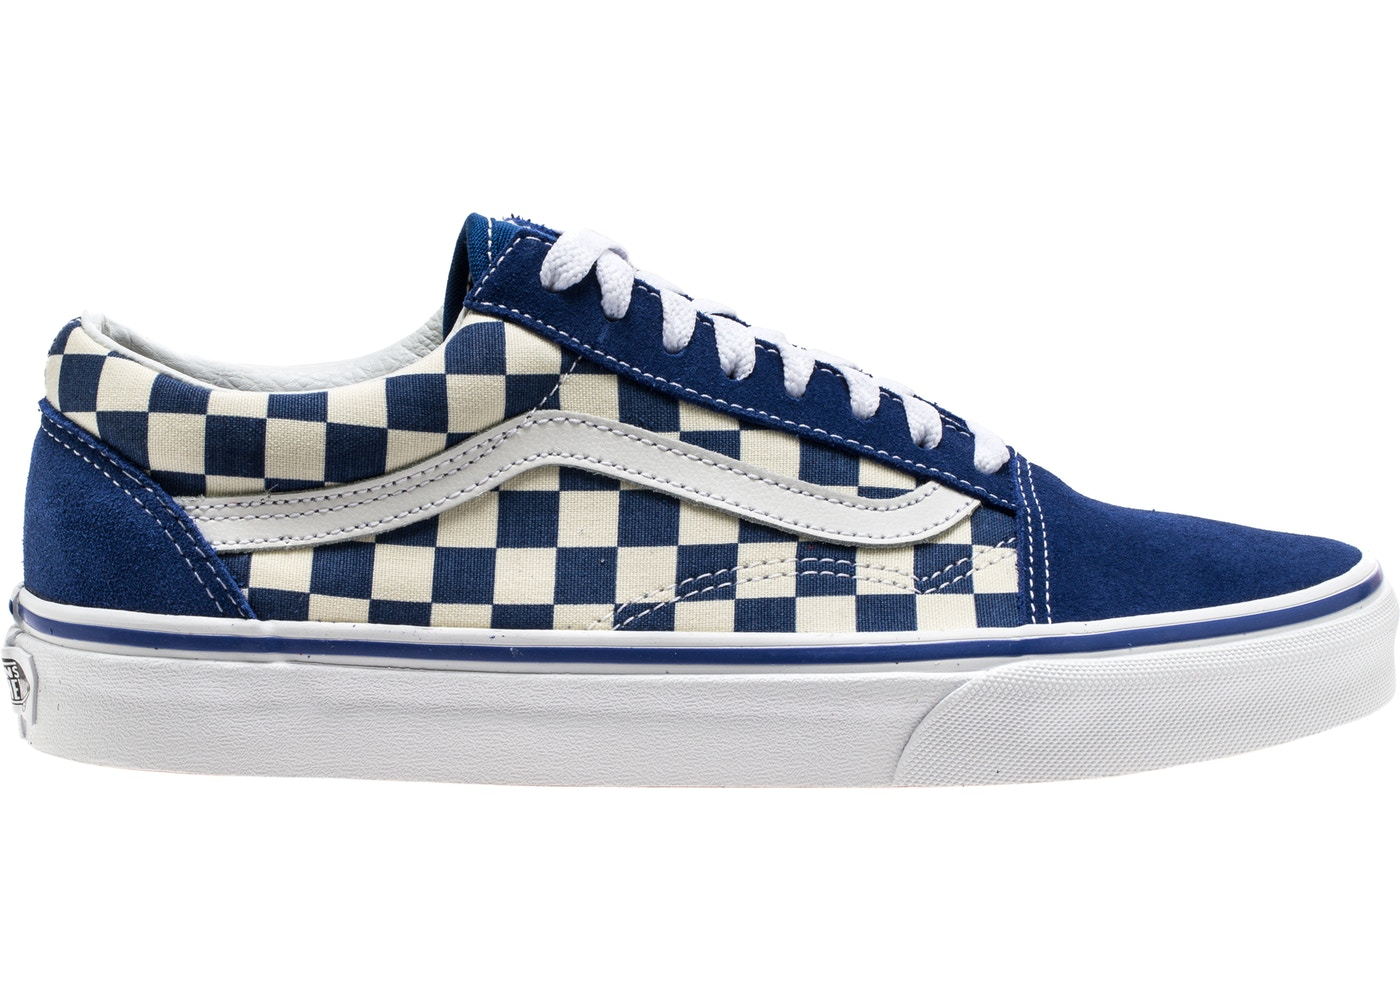 Vans Old Skool Blue Checkerboard.